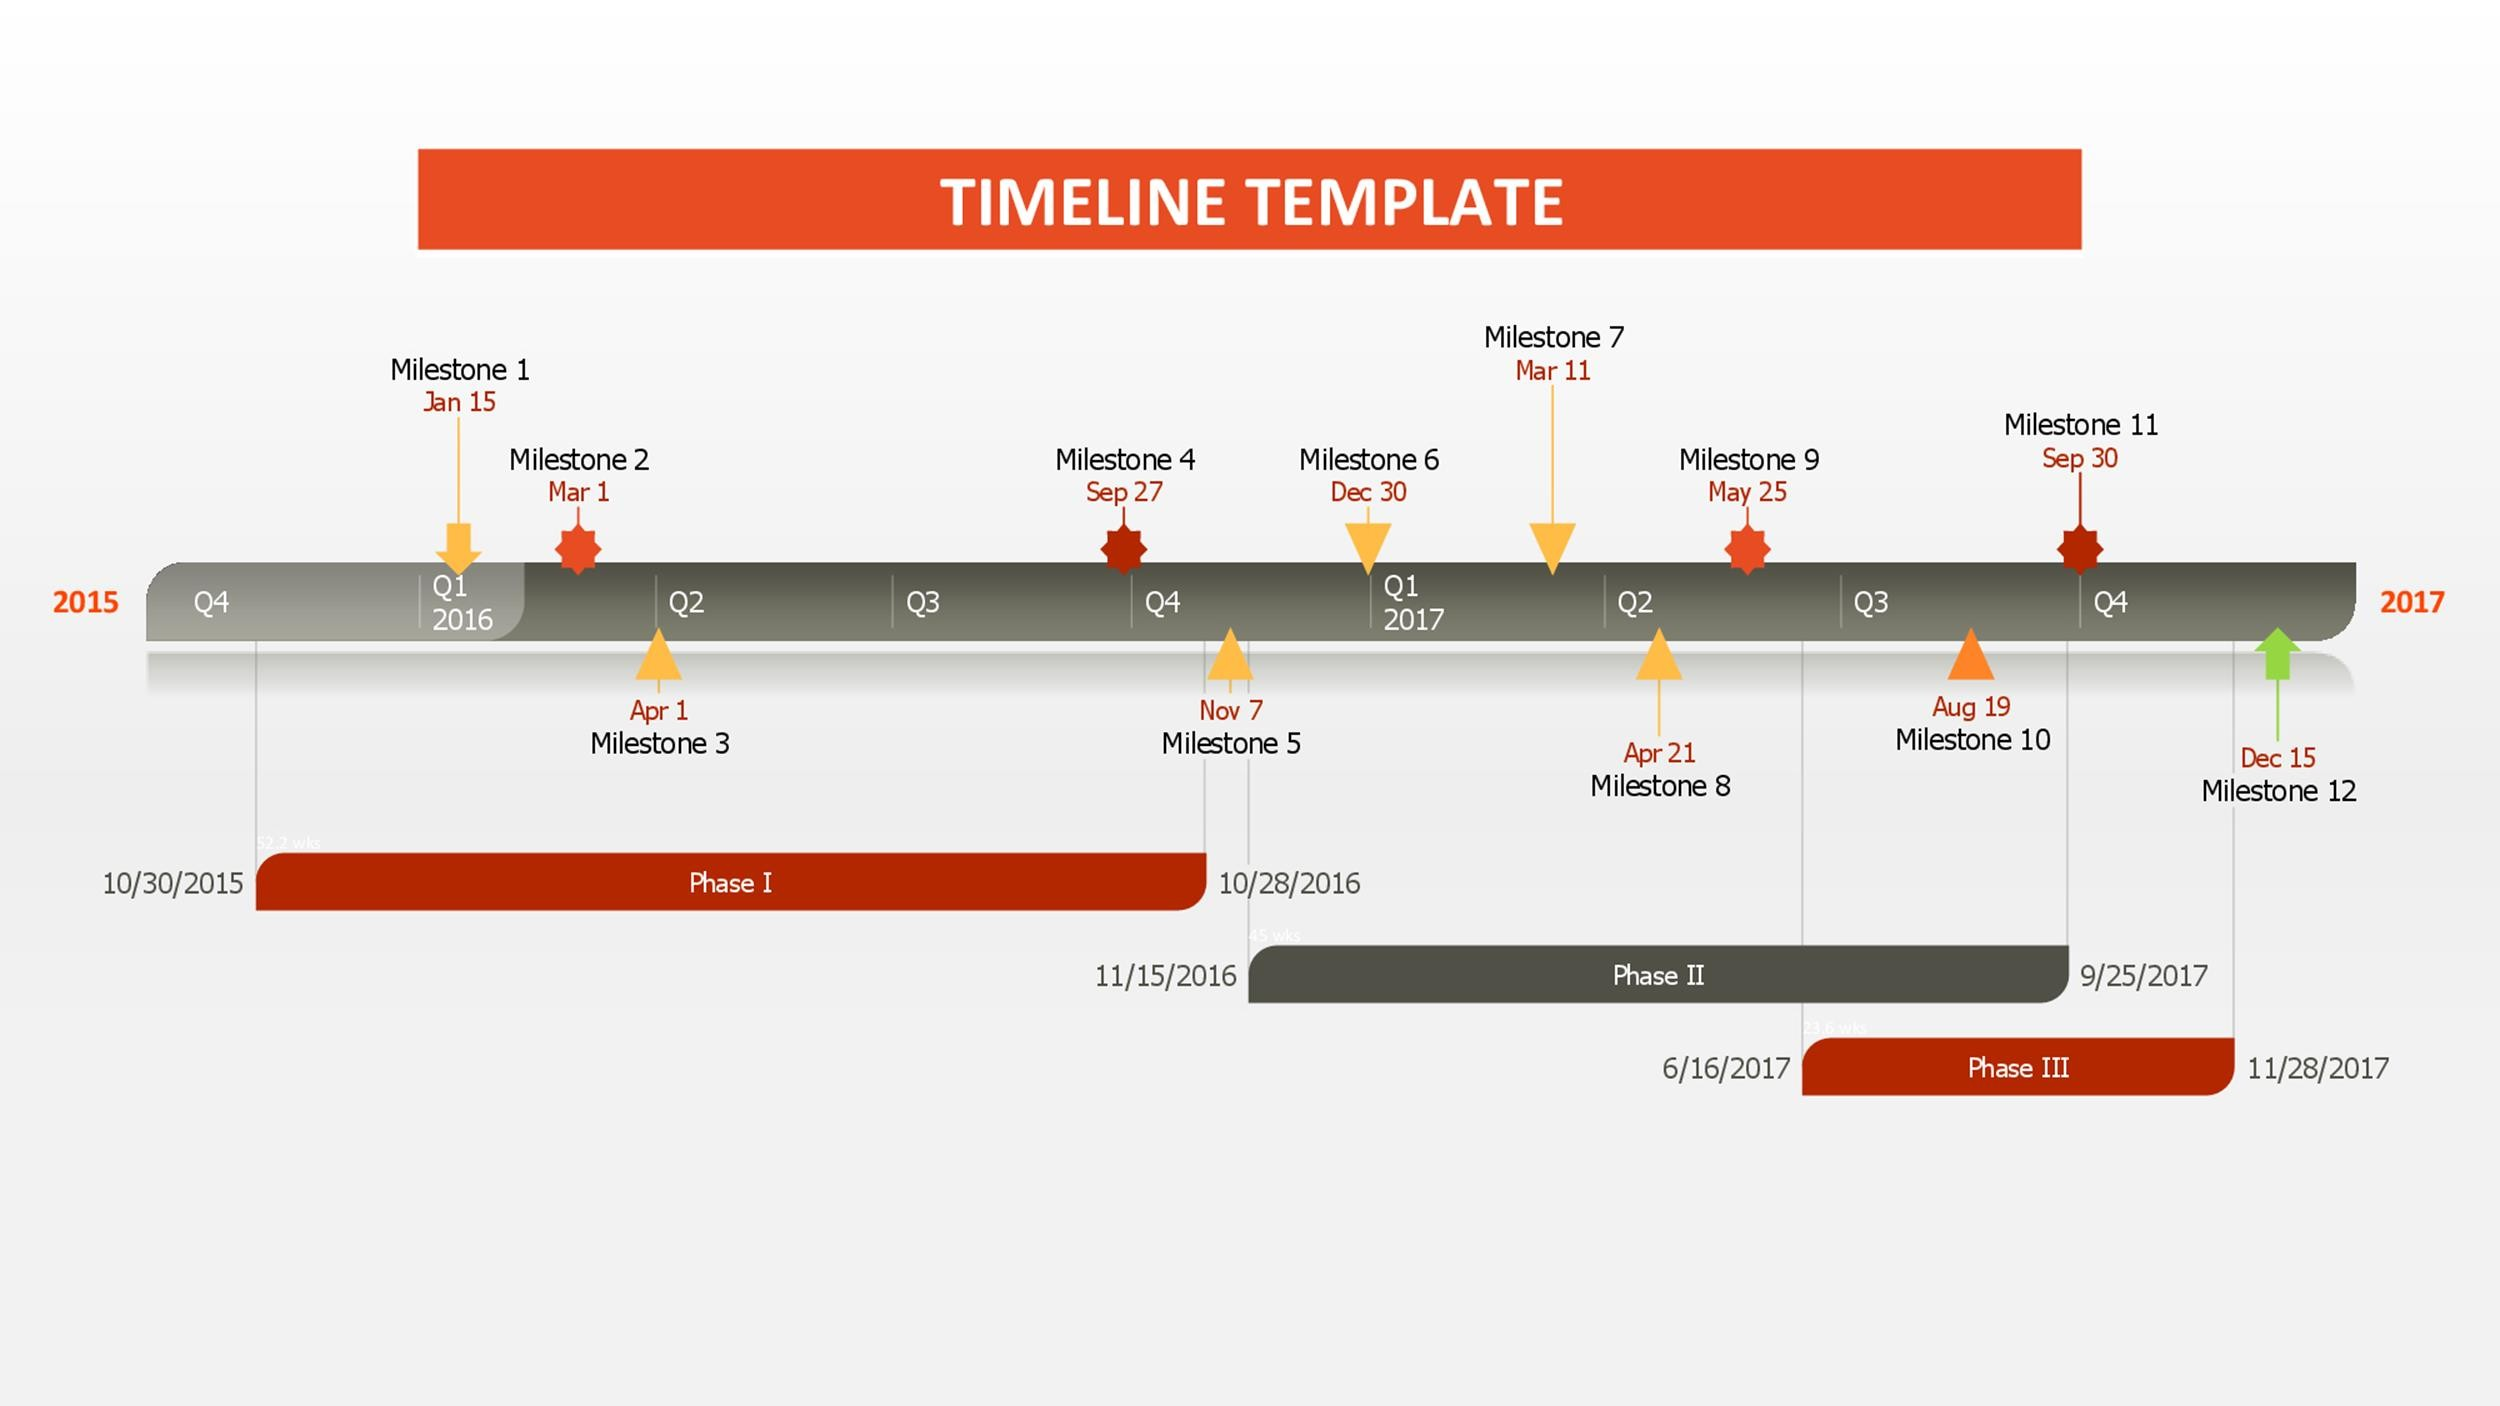 Timeline Templates Excel Power Point Word Template Lab - Ms excel timeline template